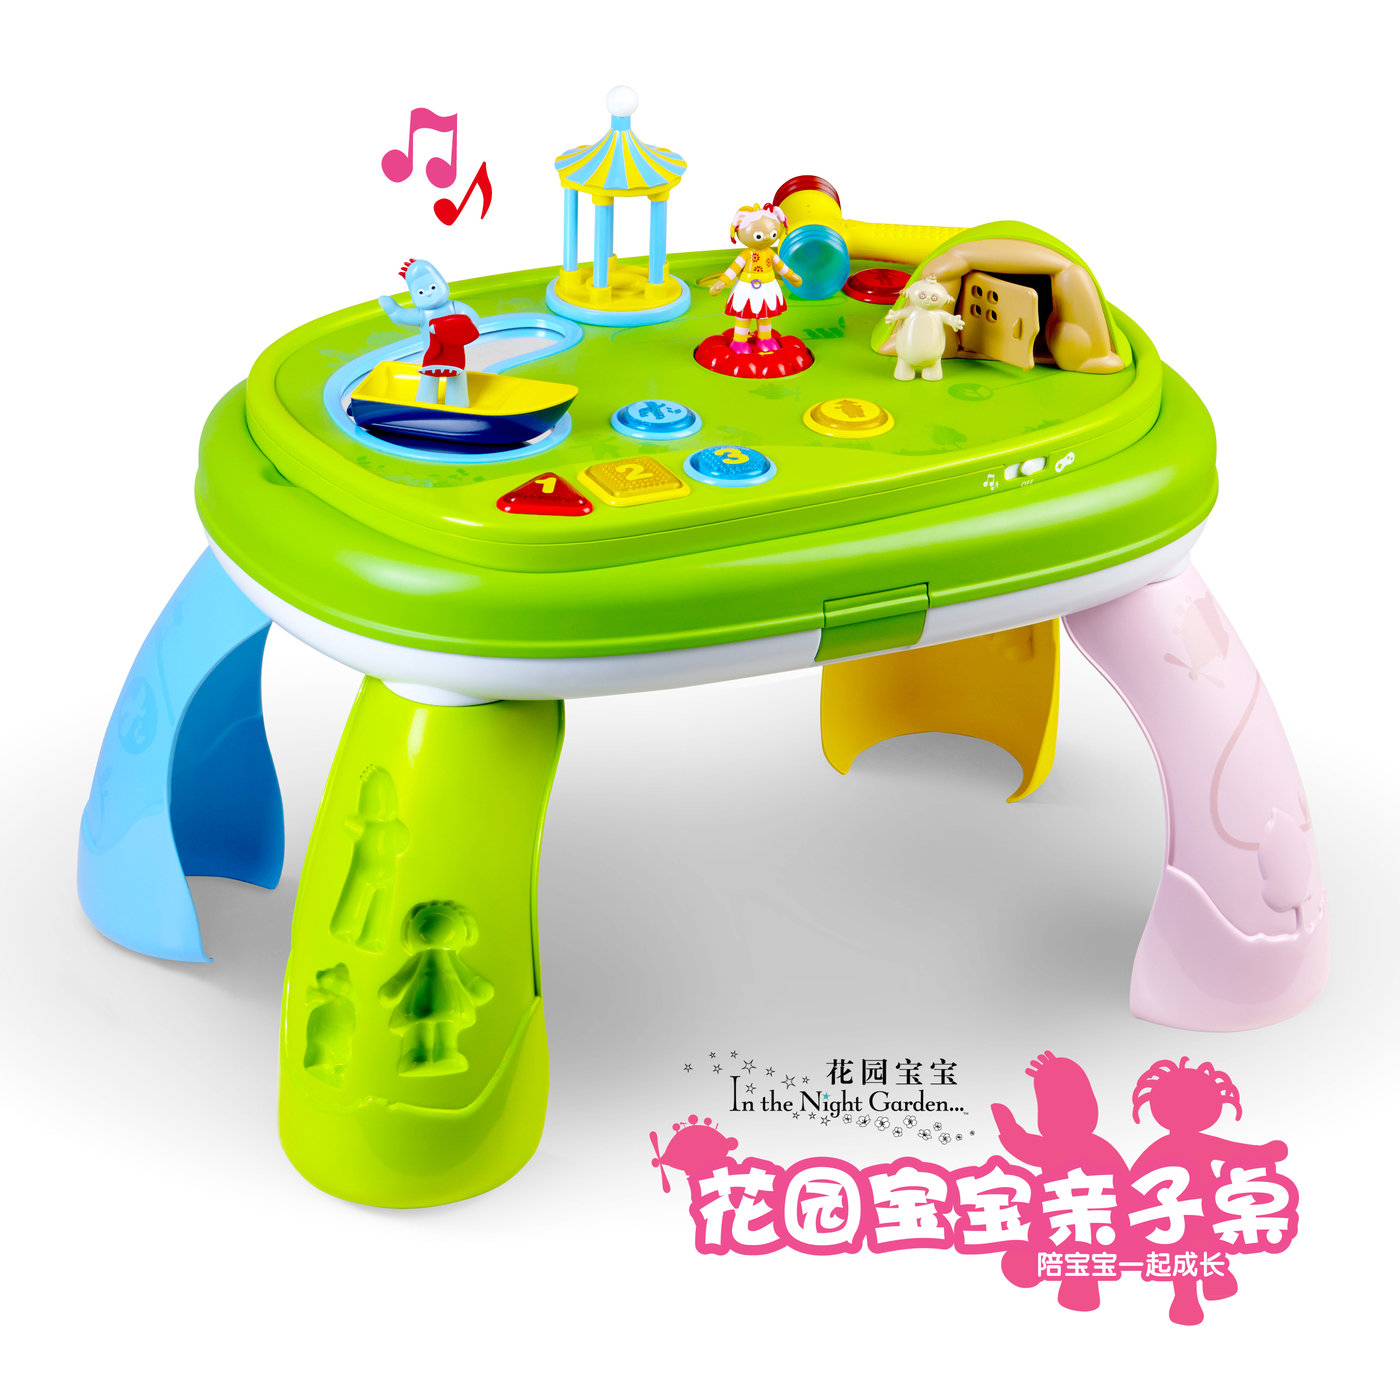 In The Night Garden Activity Table by Yuchen Pei at Coroflot.com